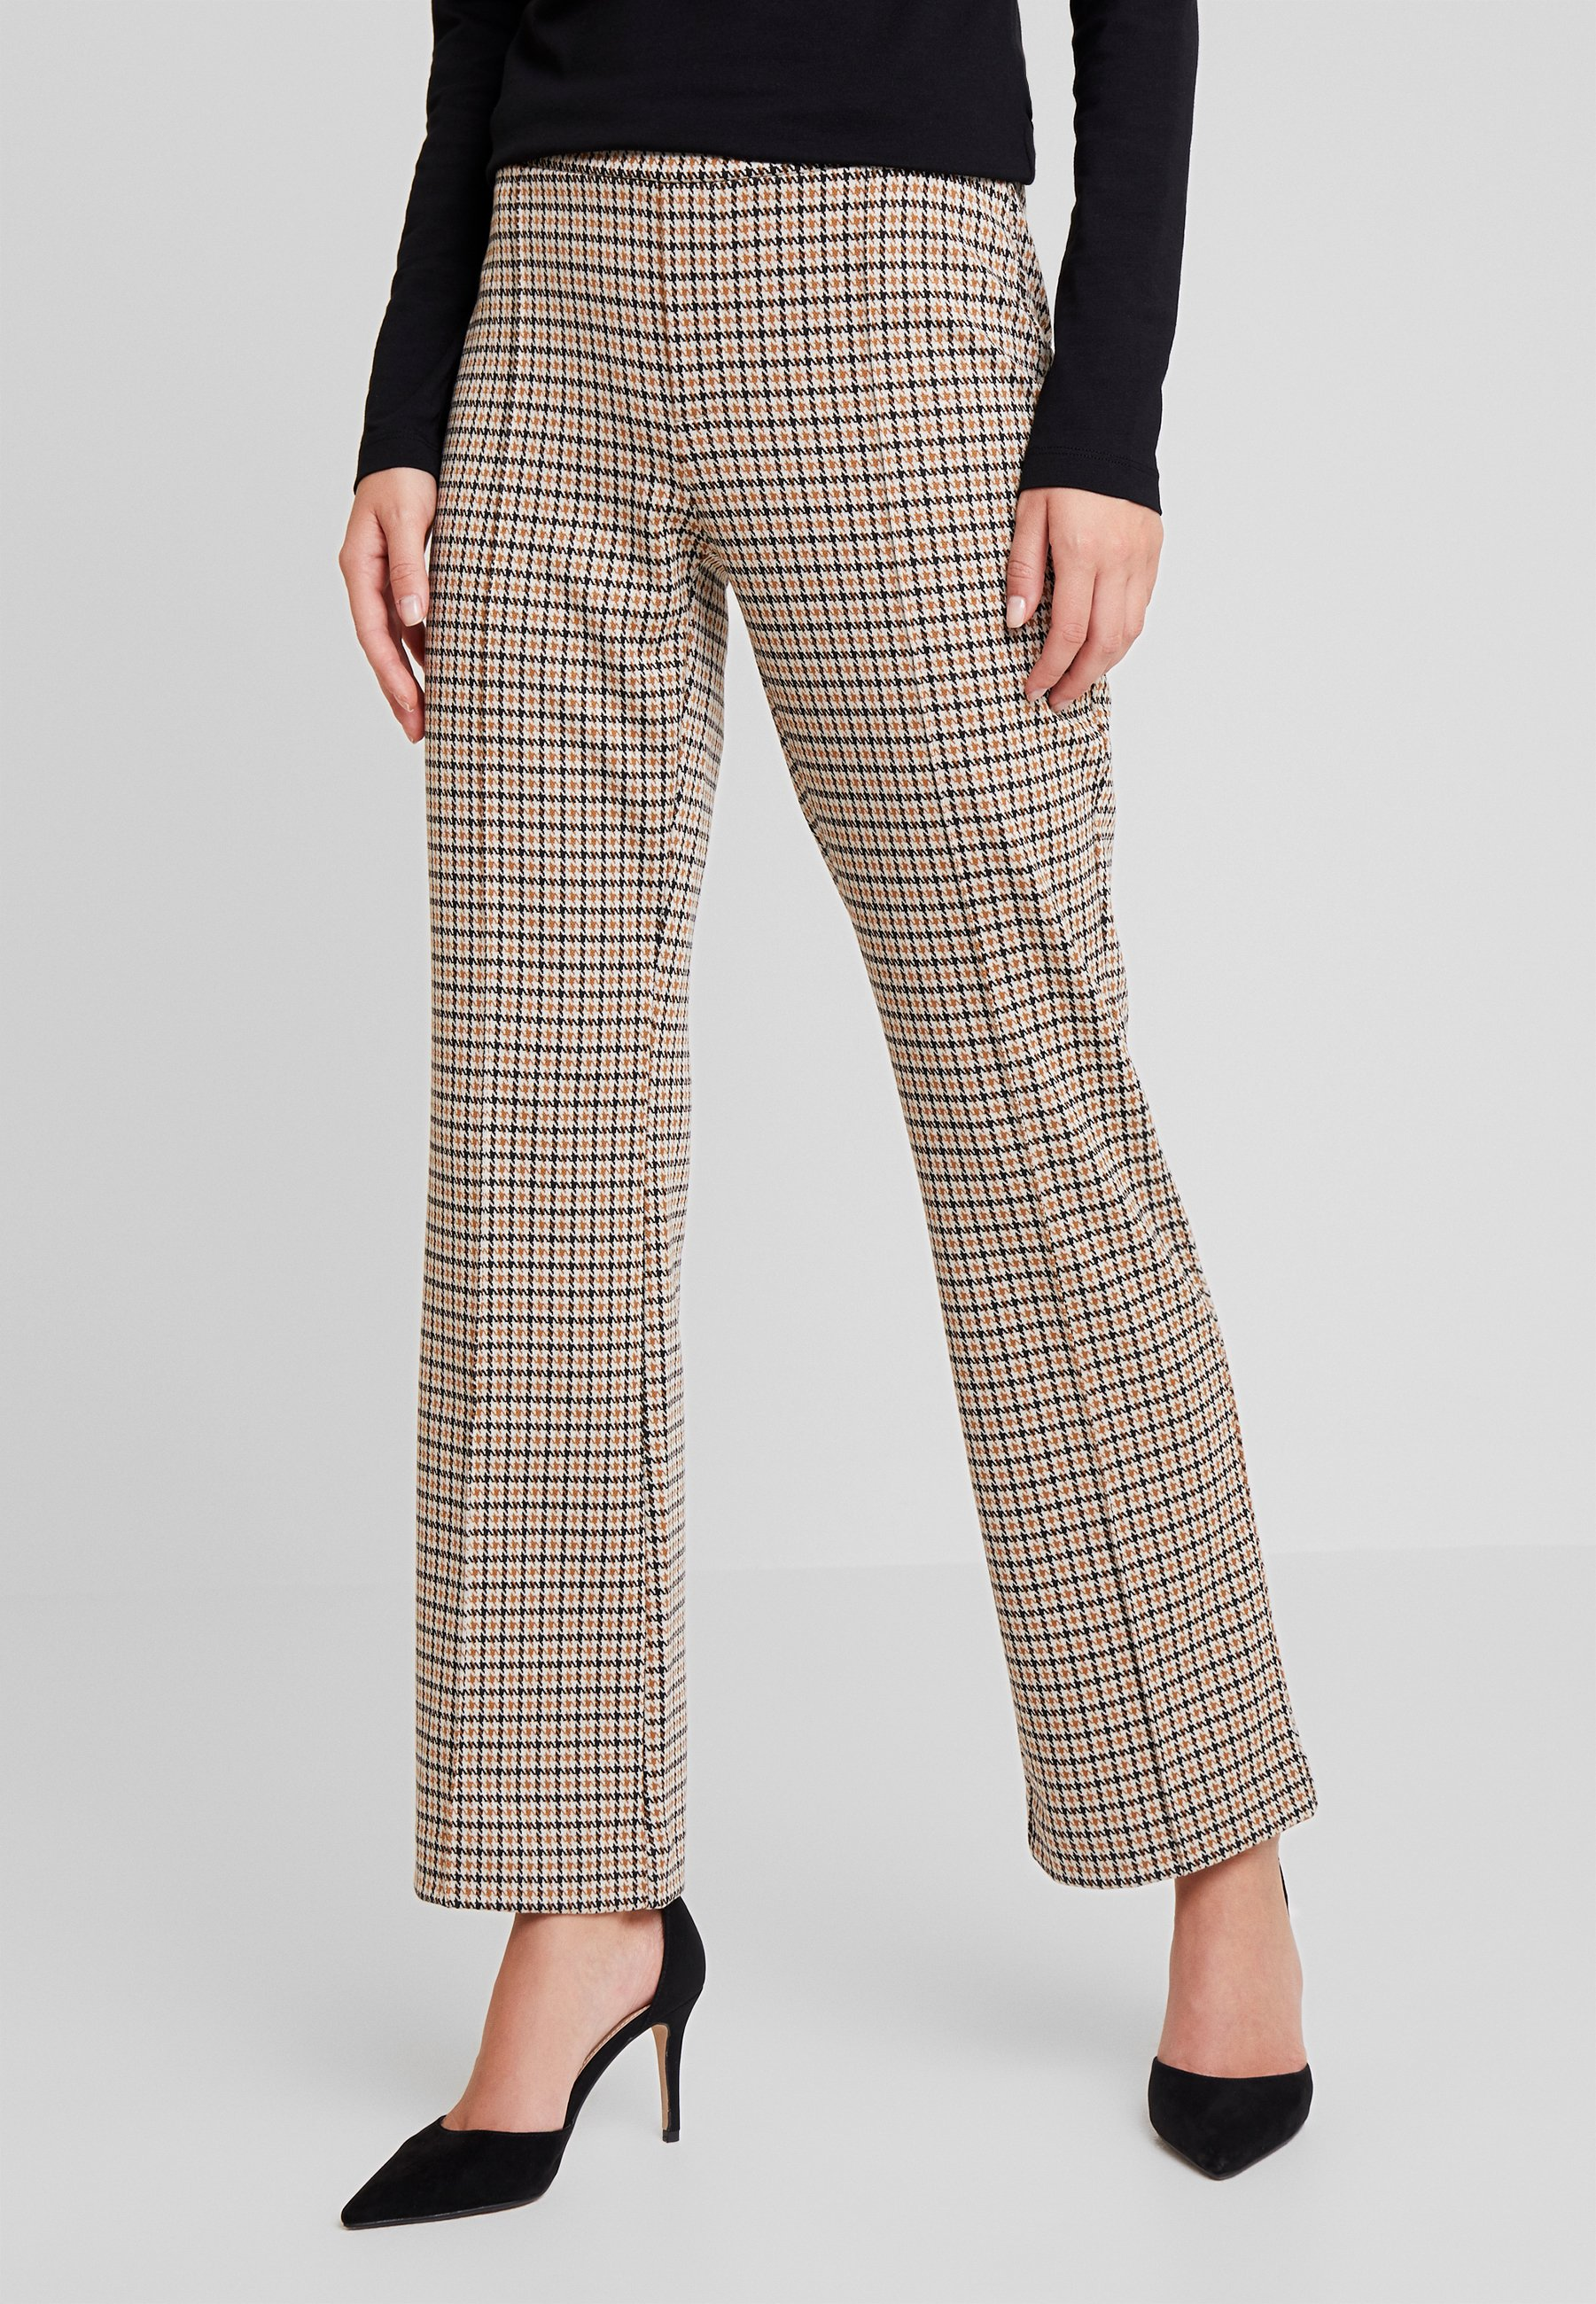 Part Part Classique PontasPantalon Brown Two Brown Part PontasPantalon Classique Two jUSVLGqzMp